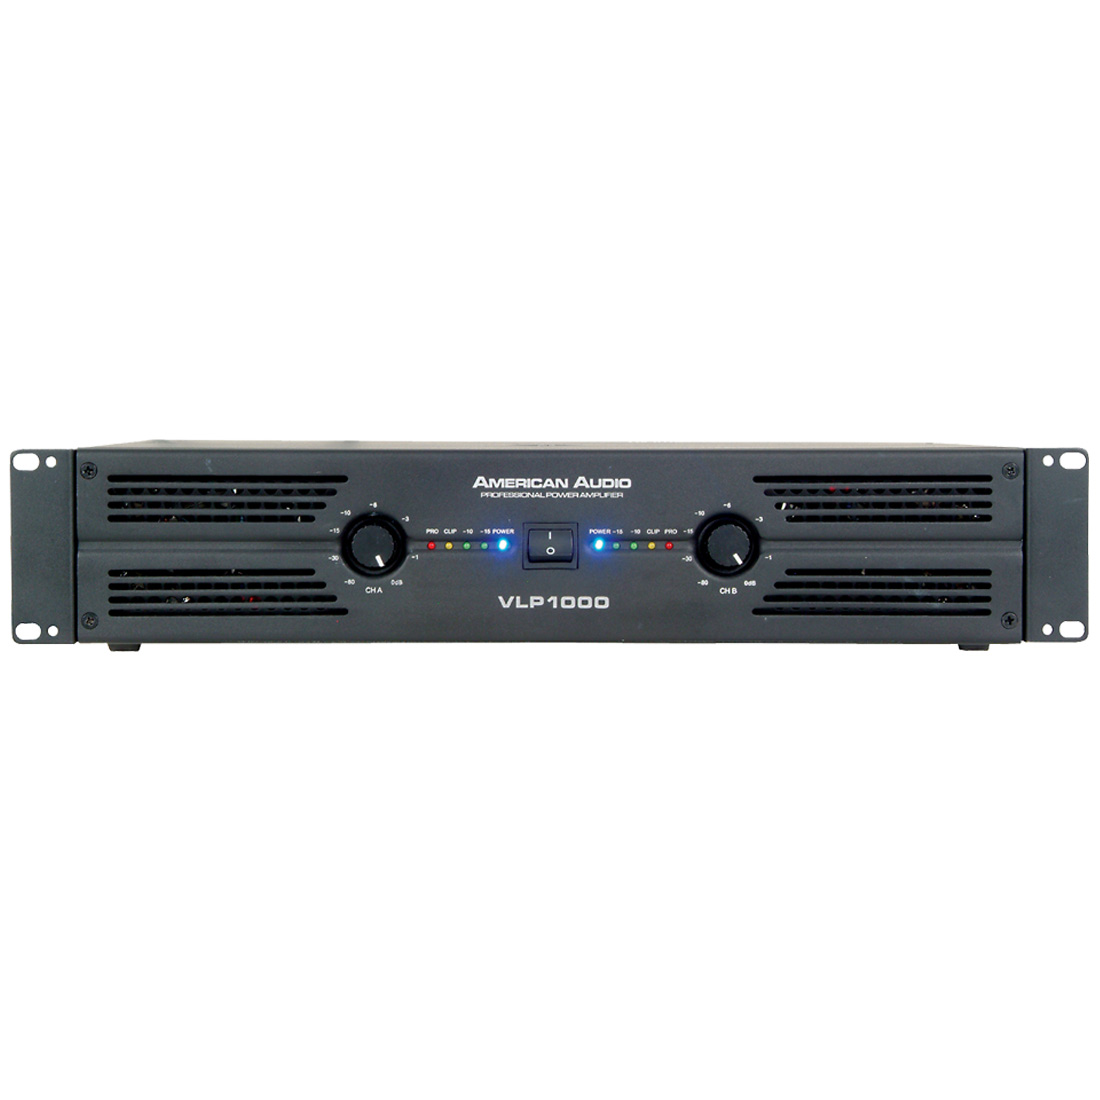 VLP1000 power amplifier